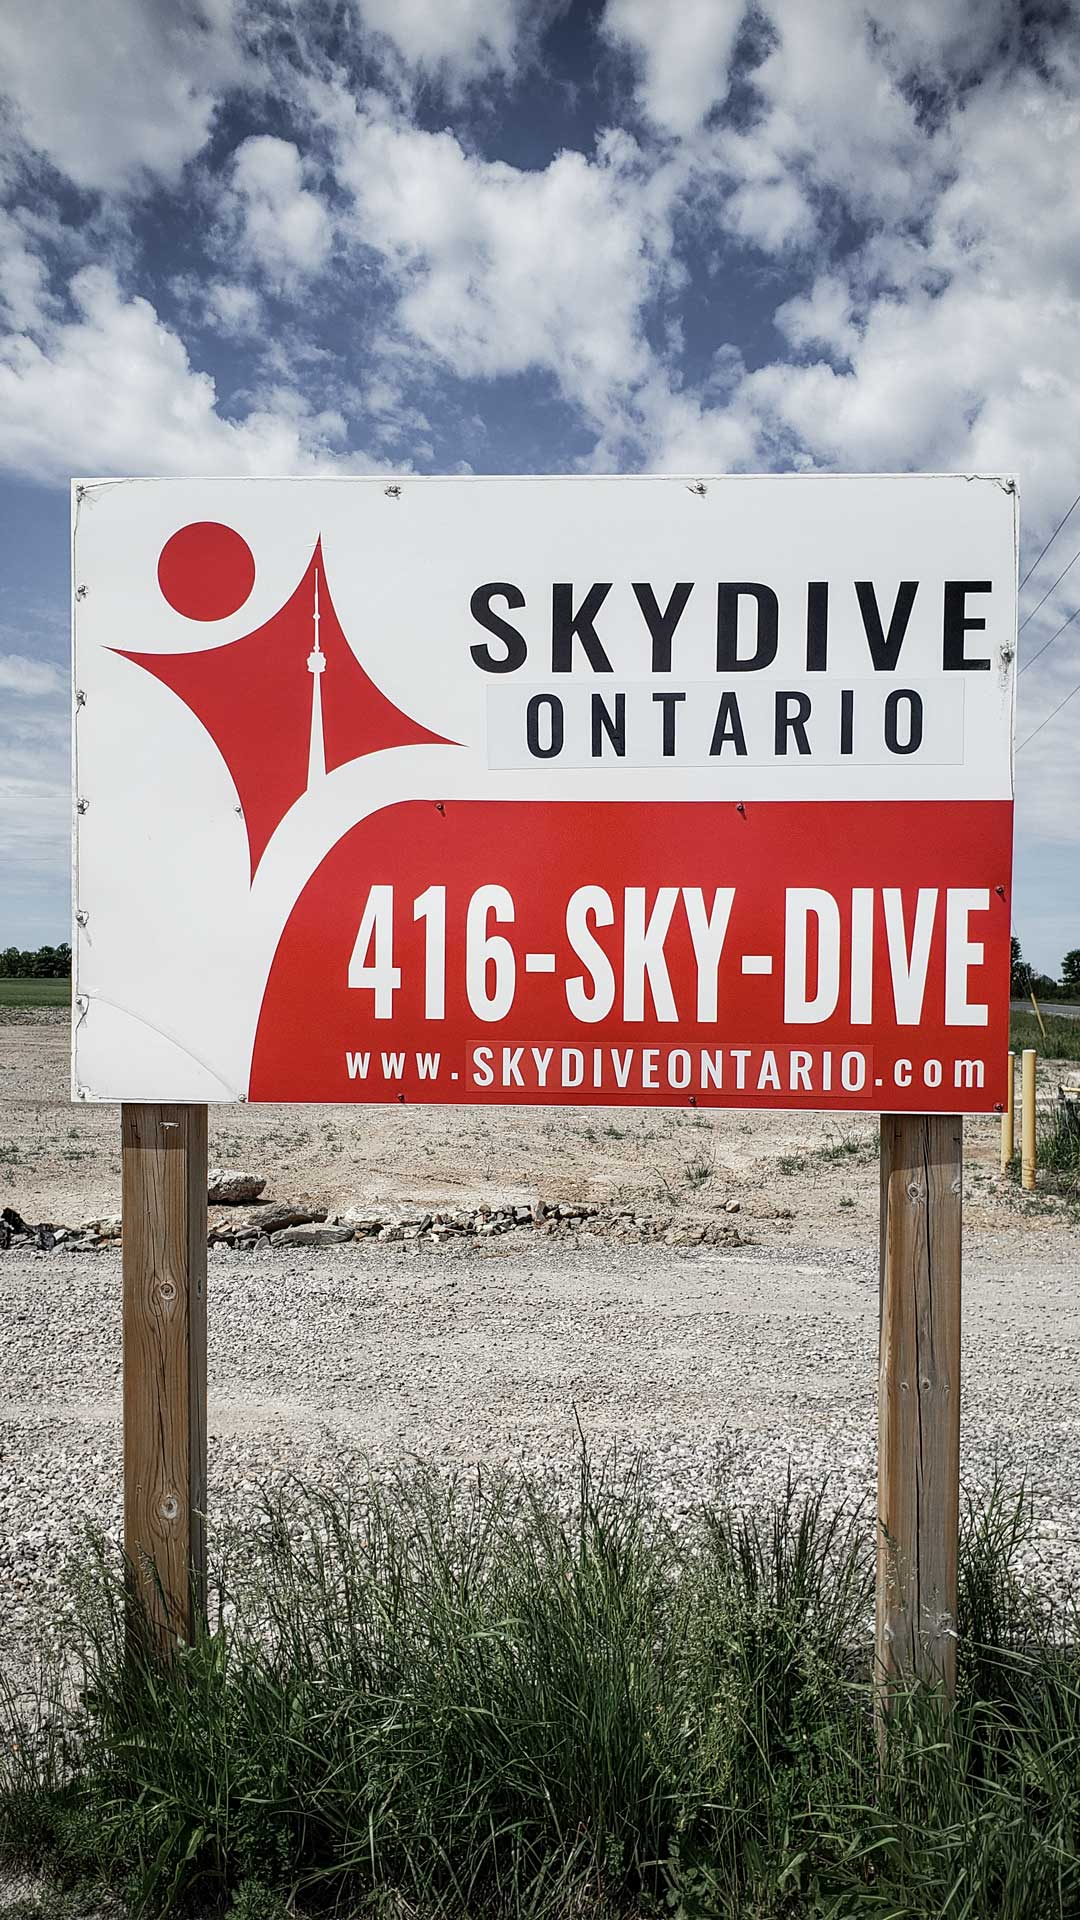 Skydive Ontario Road Sign